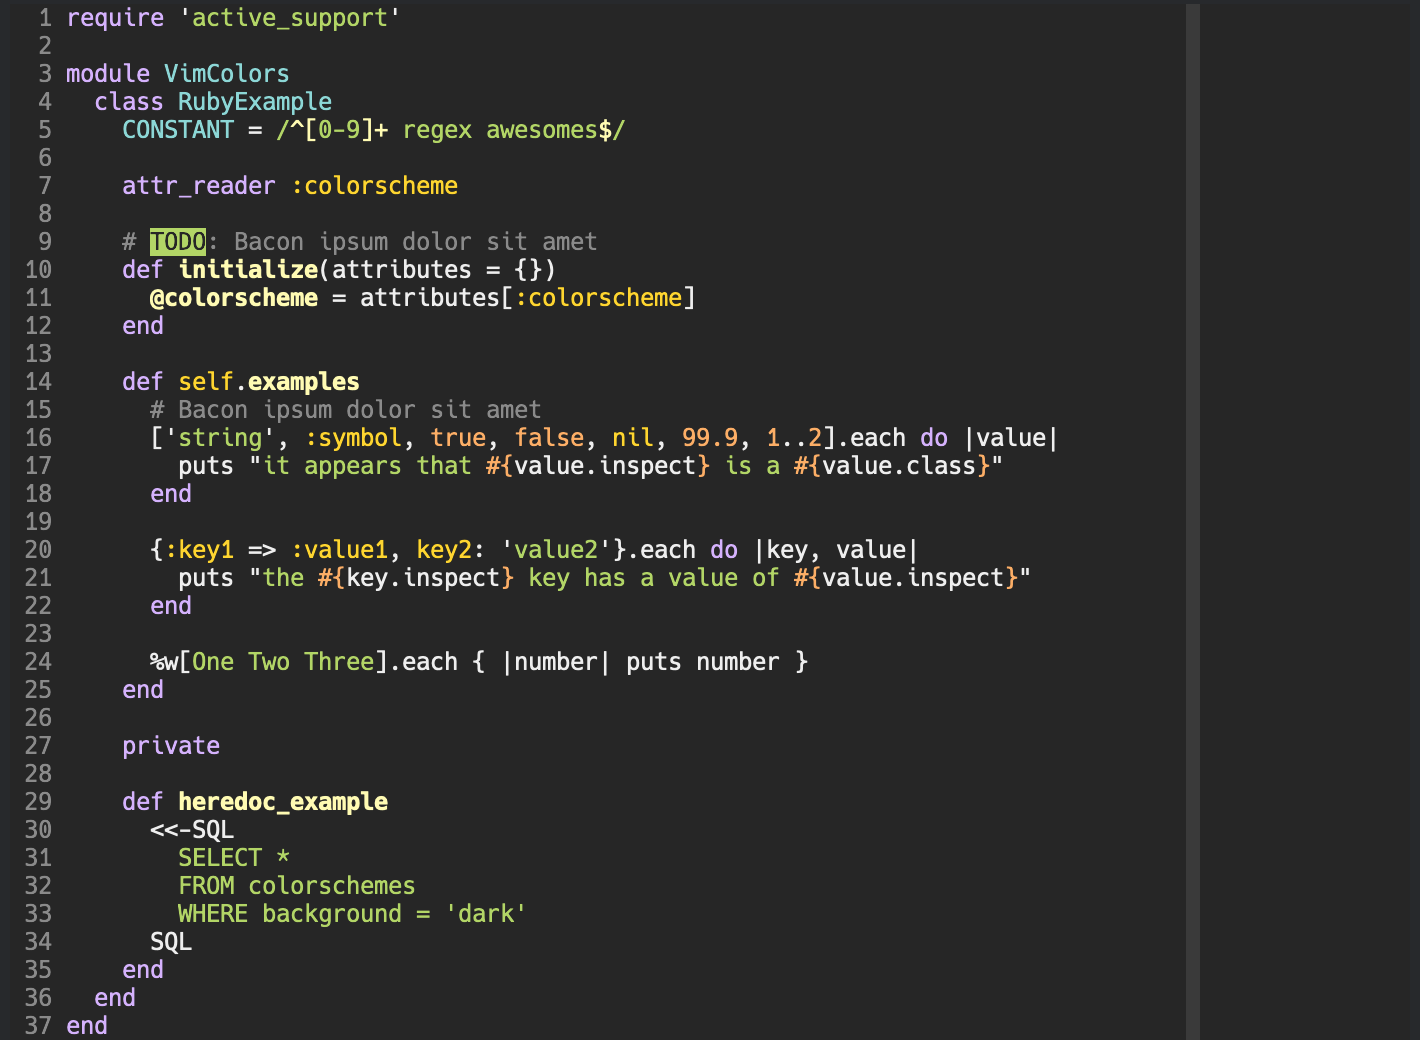 open-color.vim with dark background in 256 colors